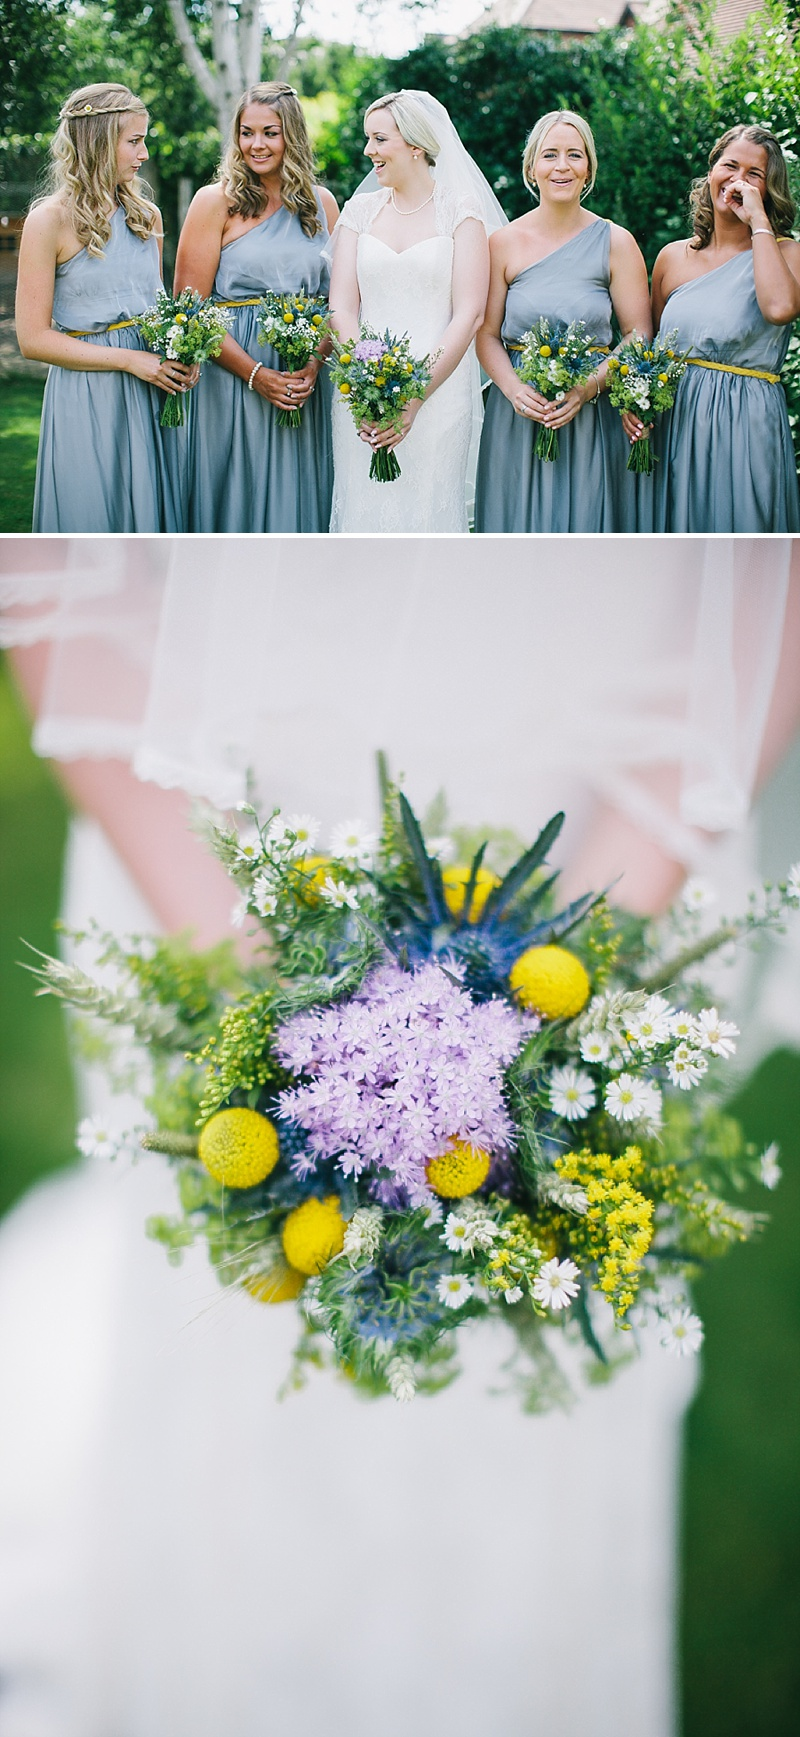 Rustic-Tipi-Wedding-With-Yellow-Details-In-Shropshire-Bride-In-Sienna-By-Sassi-Holford-Images-By-Chris-Barber_0007.jpg